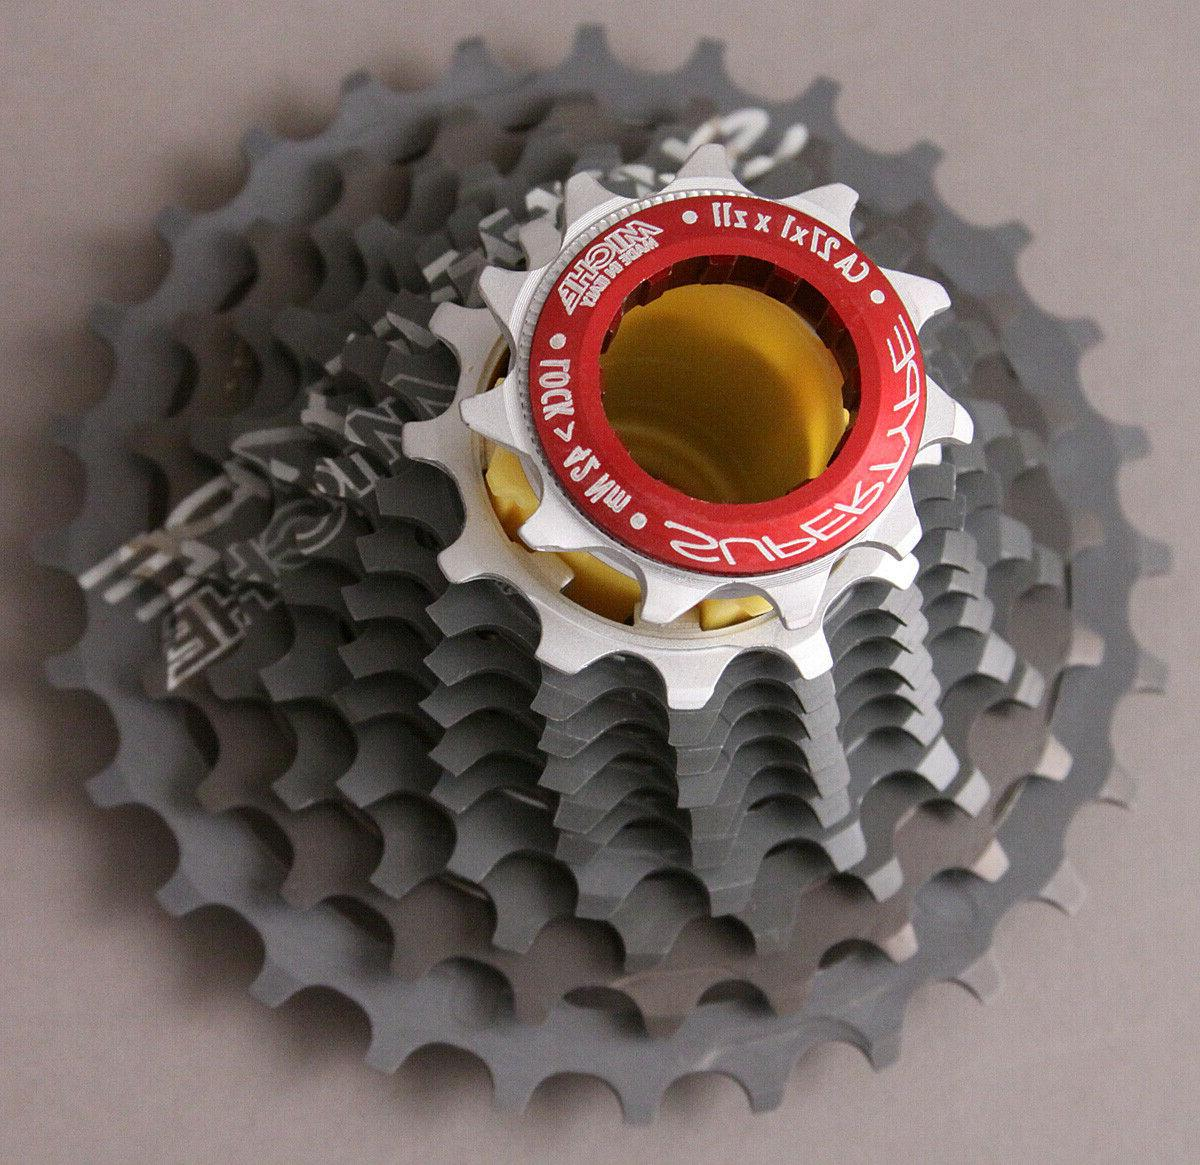 11 speed supertype race day cassette 11